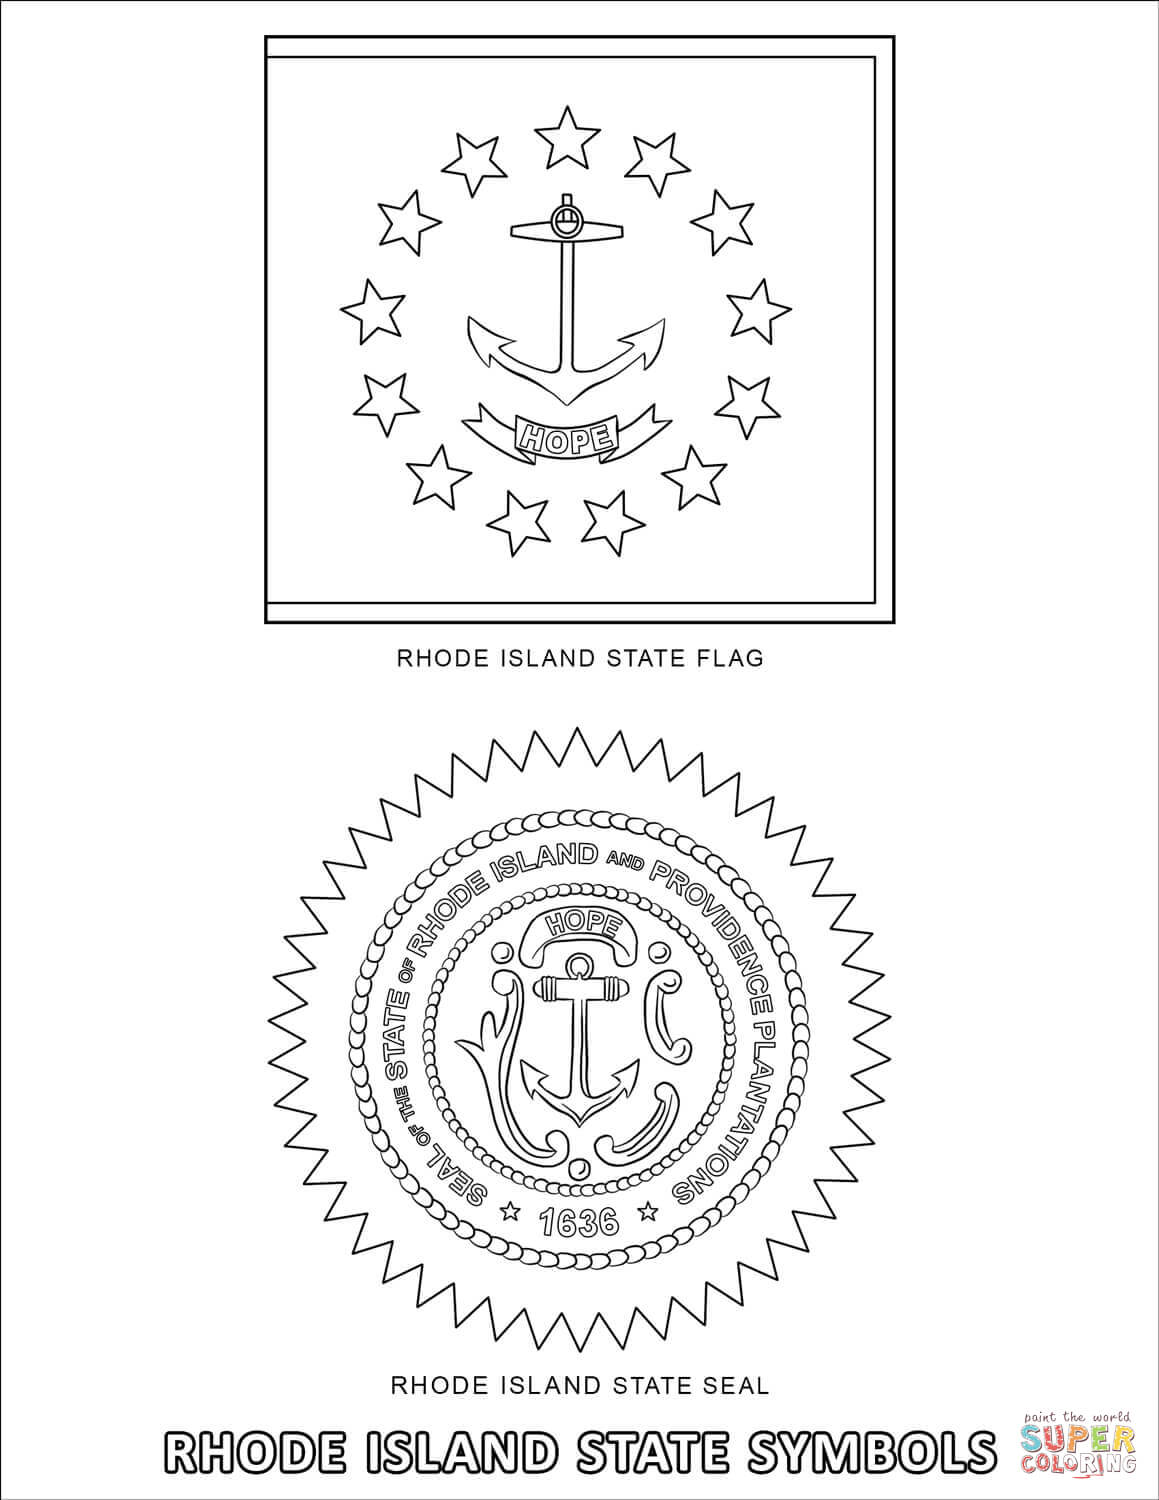 Rhode Island State Symbols Coloring Page